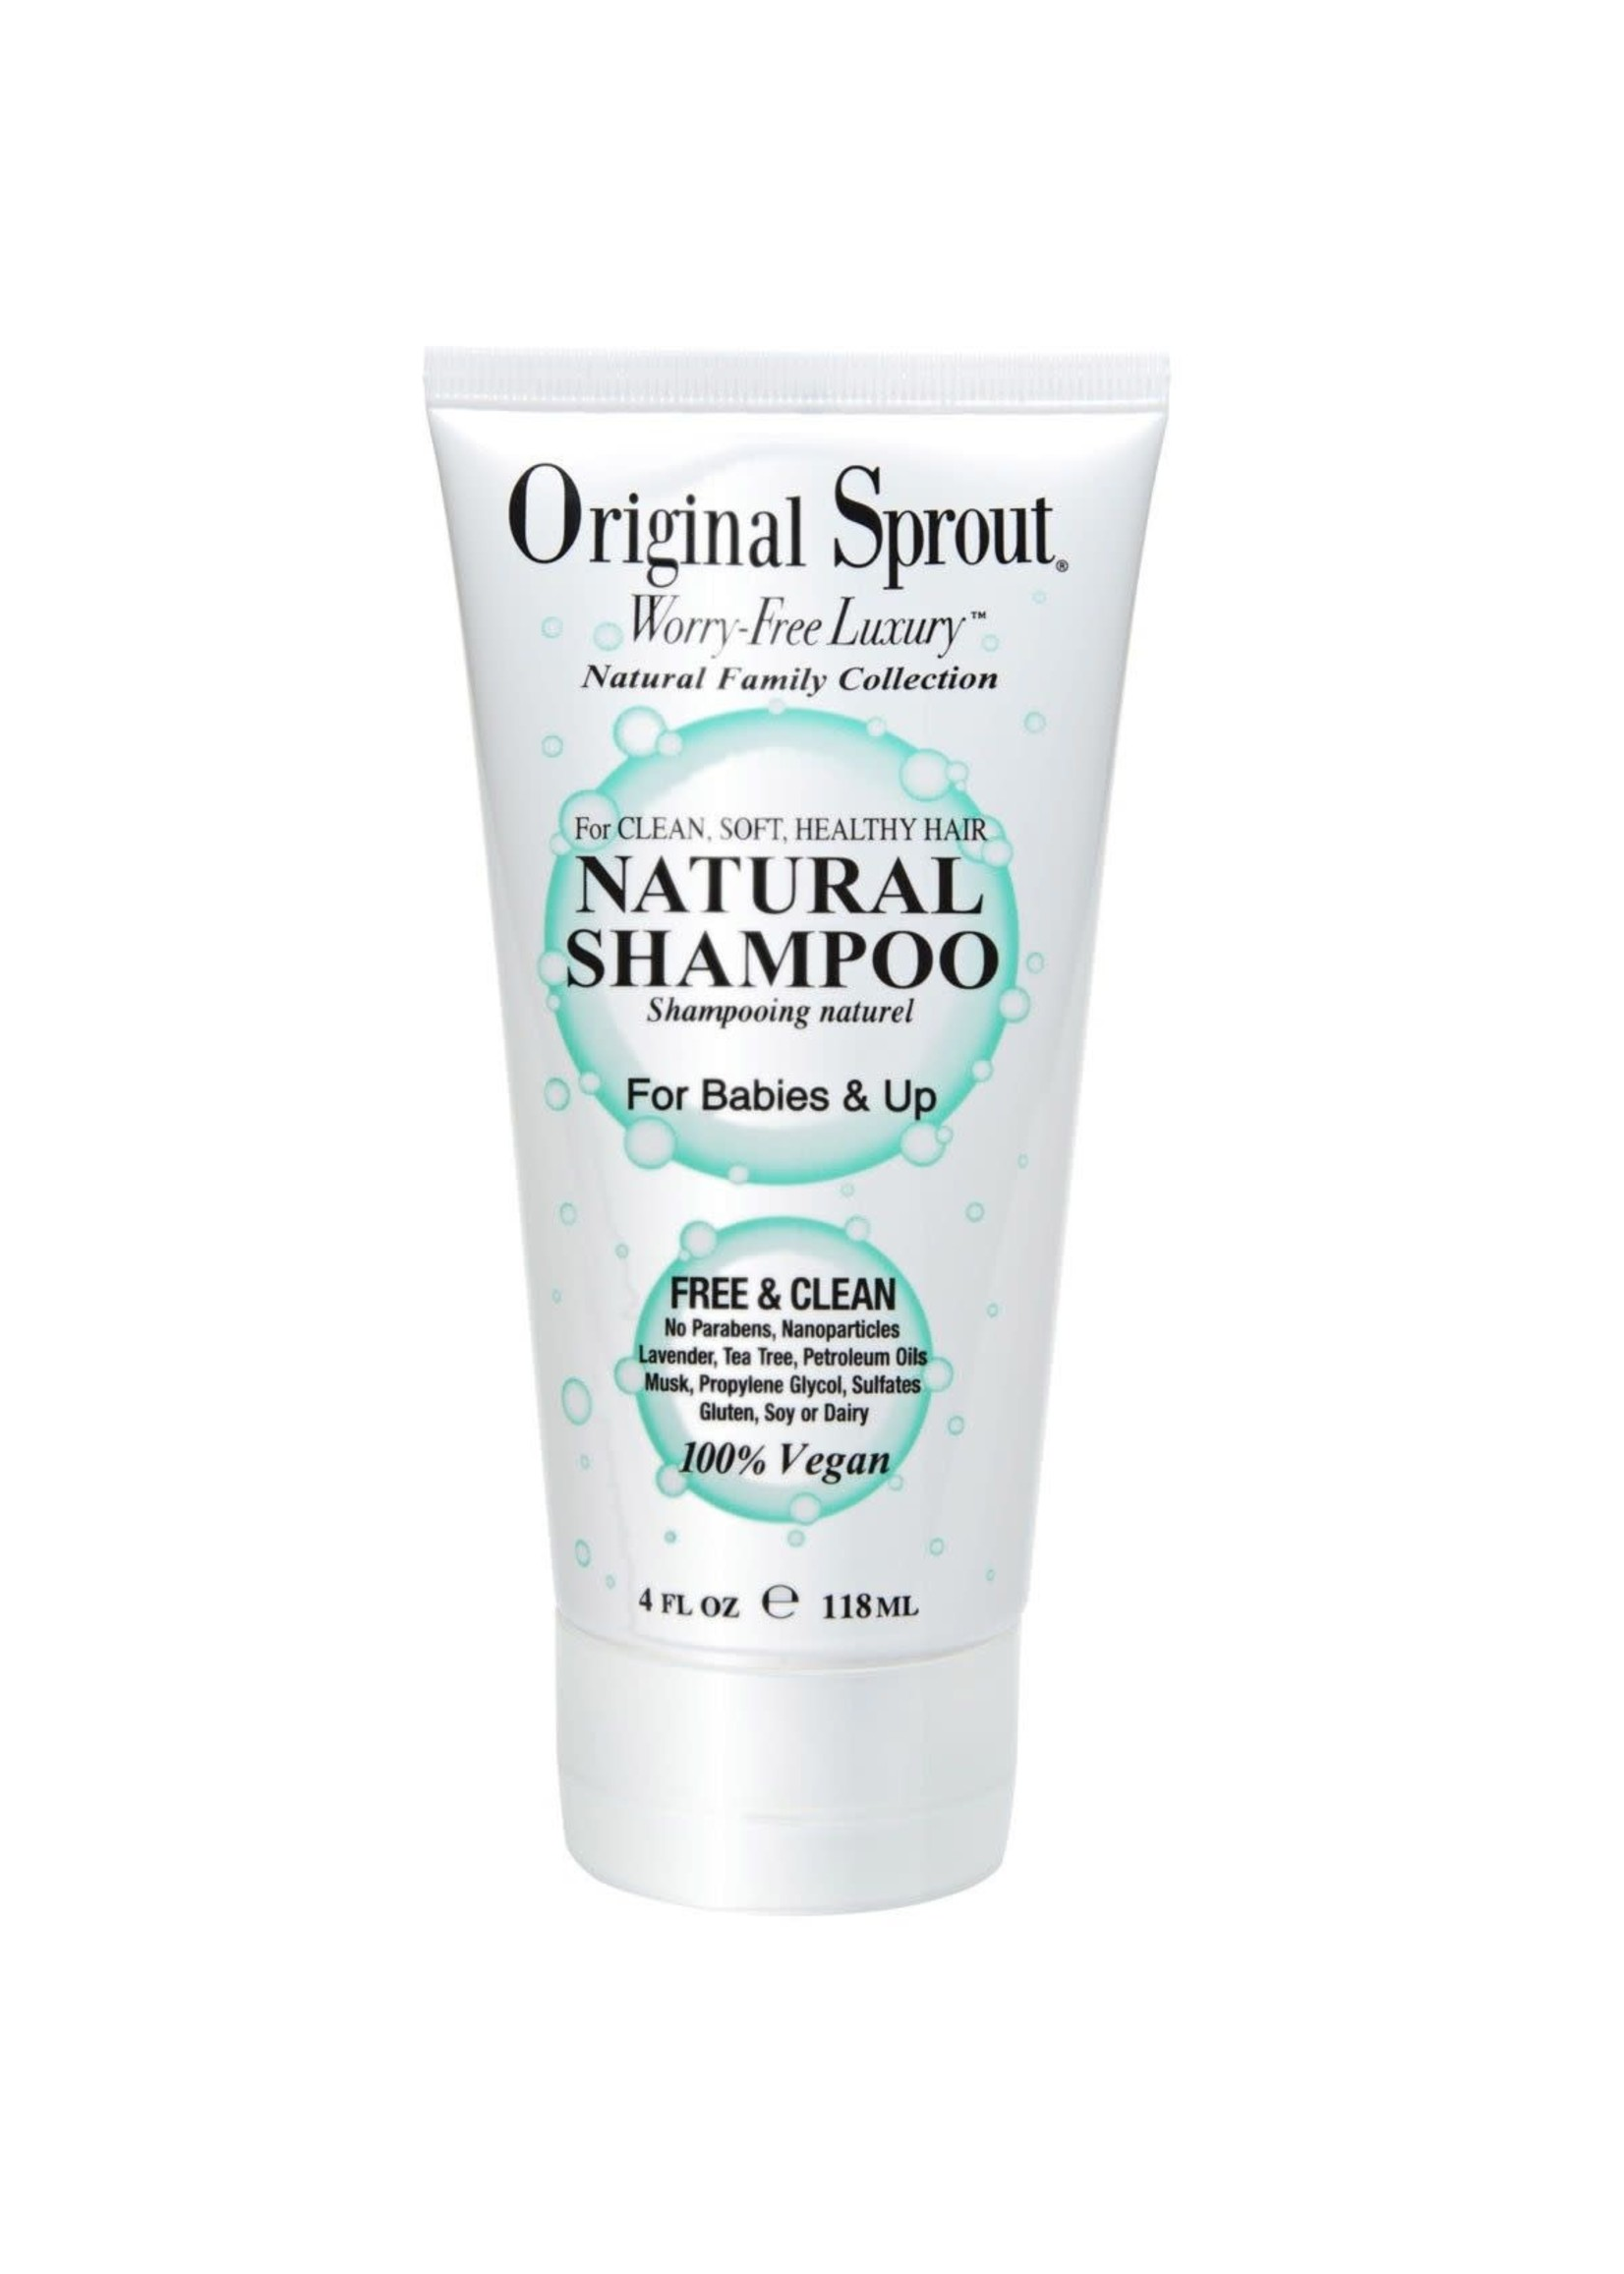 original sprout Original sprout natural shampoo